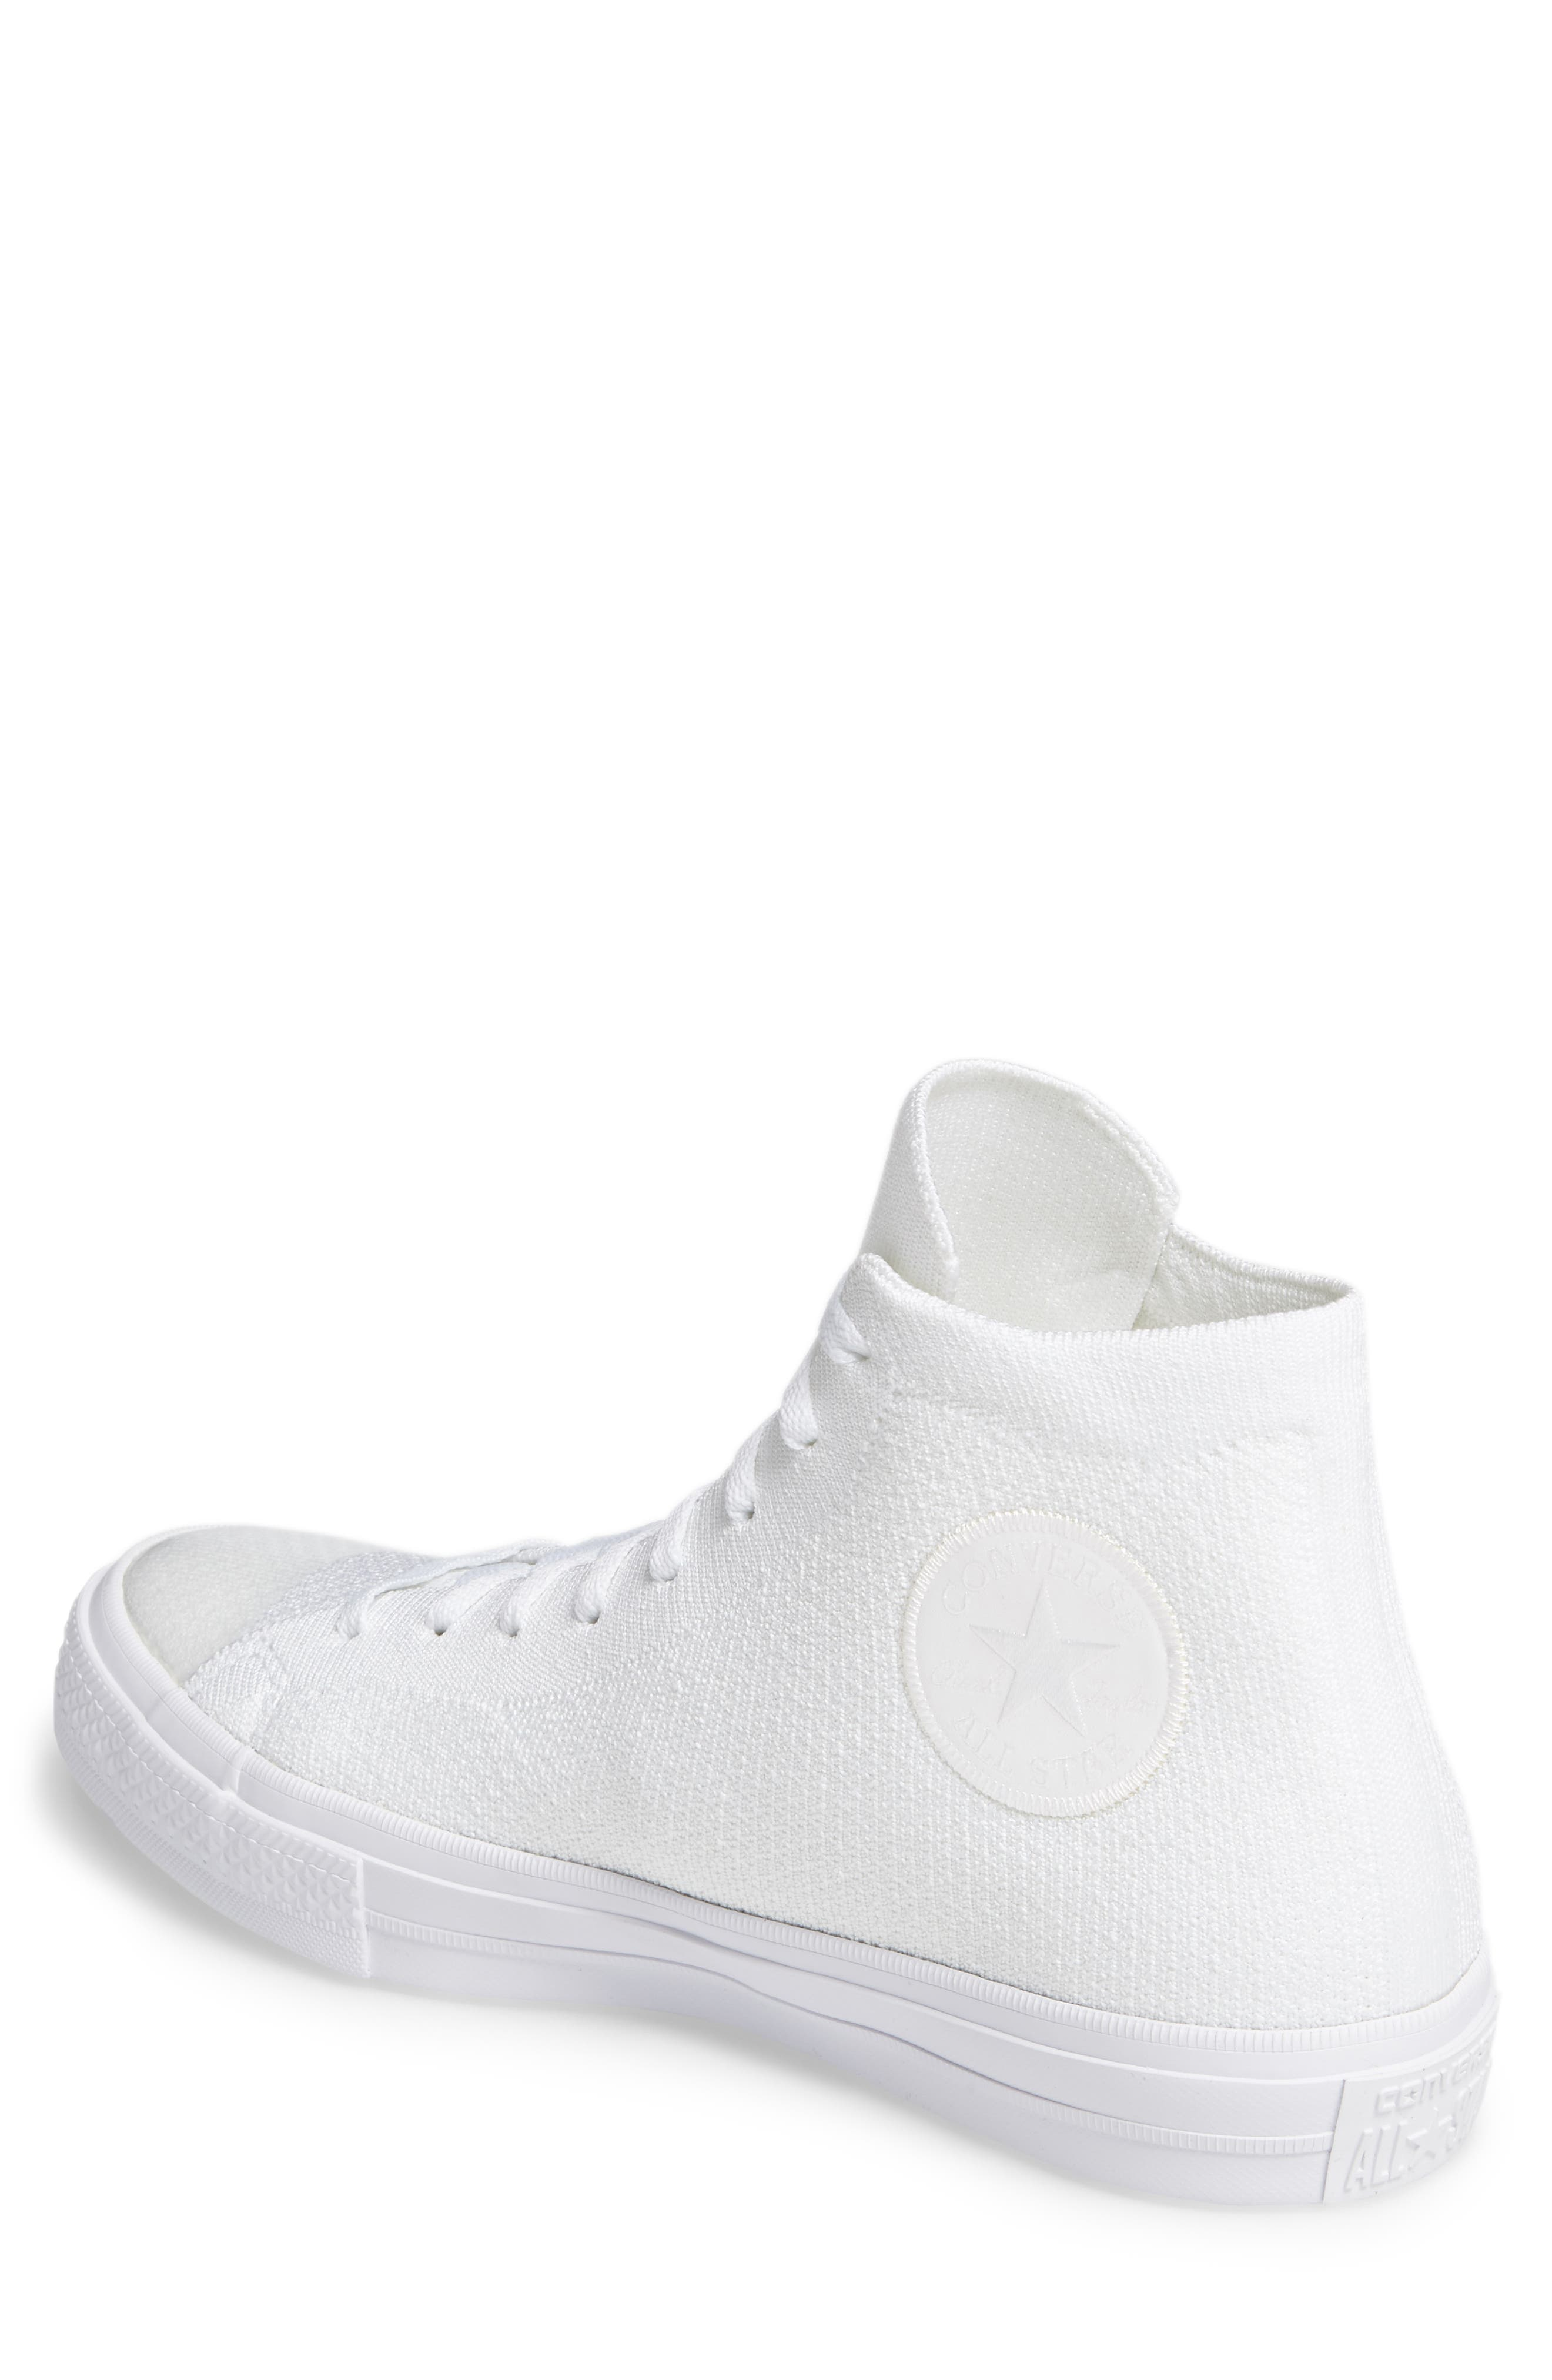 Chuck Taylor<sup>®</sup> All Star<sup>®</sup> Flyknit Hi Sneaker,                             Alternate thumbnail 10, color,